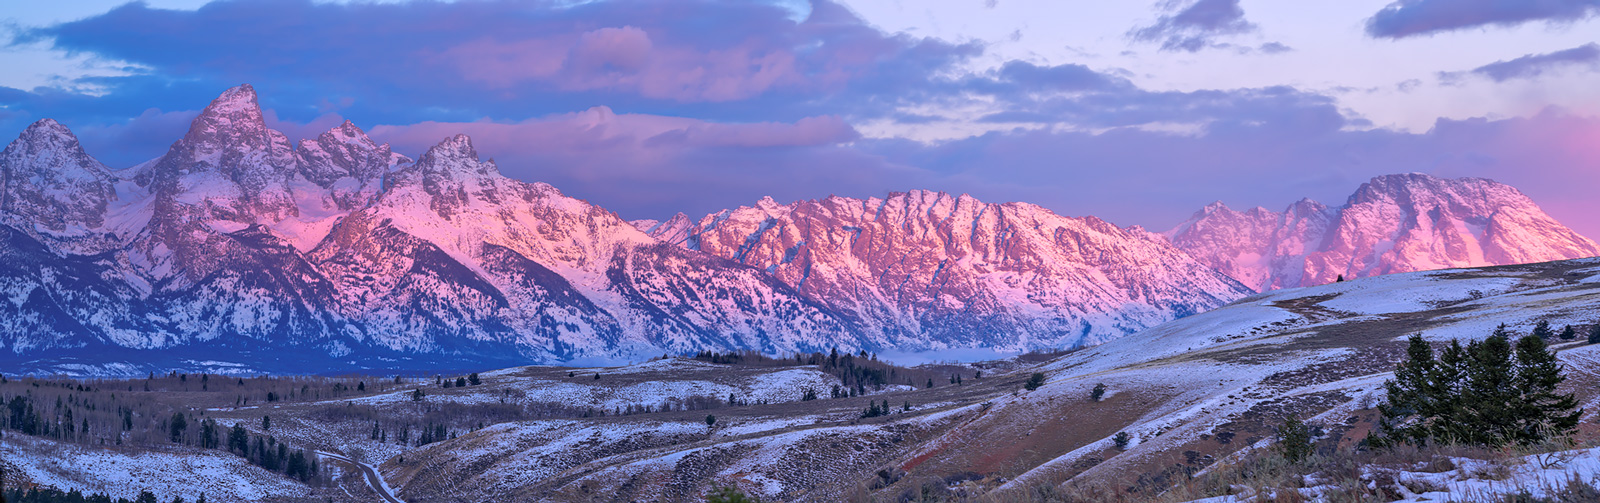 Grand Teton,Wyoming,sunrise,Gros Ventre, photo